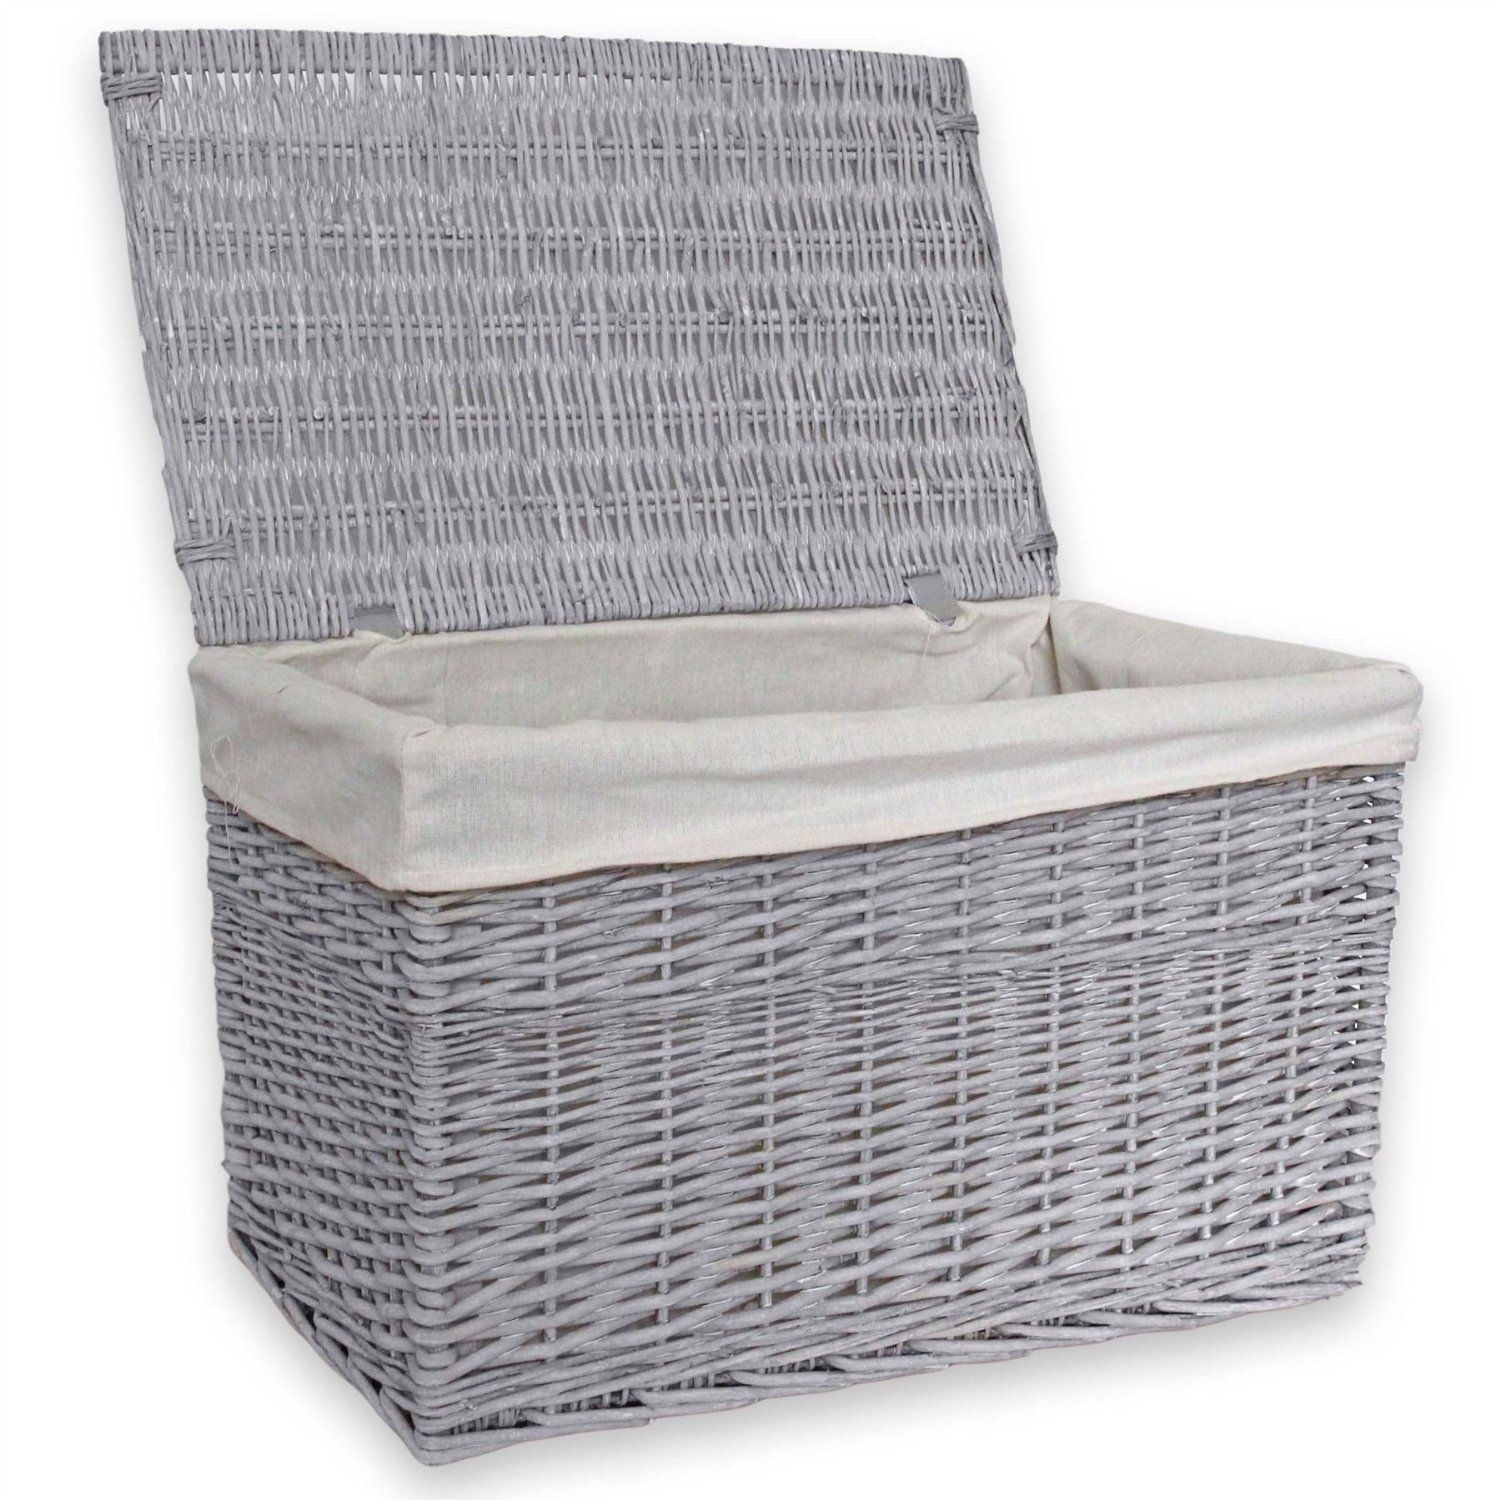 Great Homescapes Rectangular Grey Willow Wicker Laundry Baskets And Storage Basket  With Lid And Lining; A